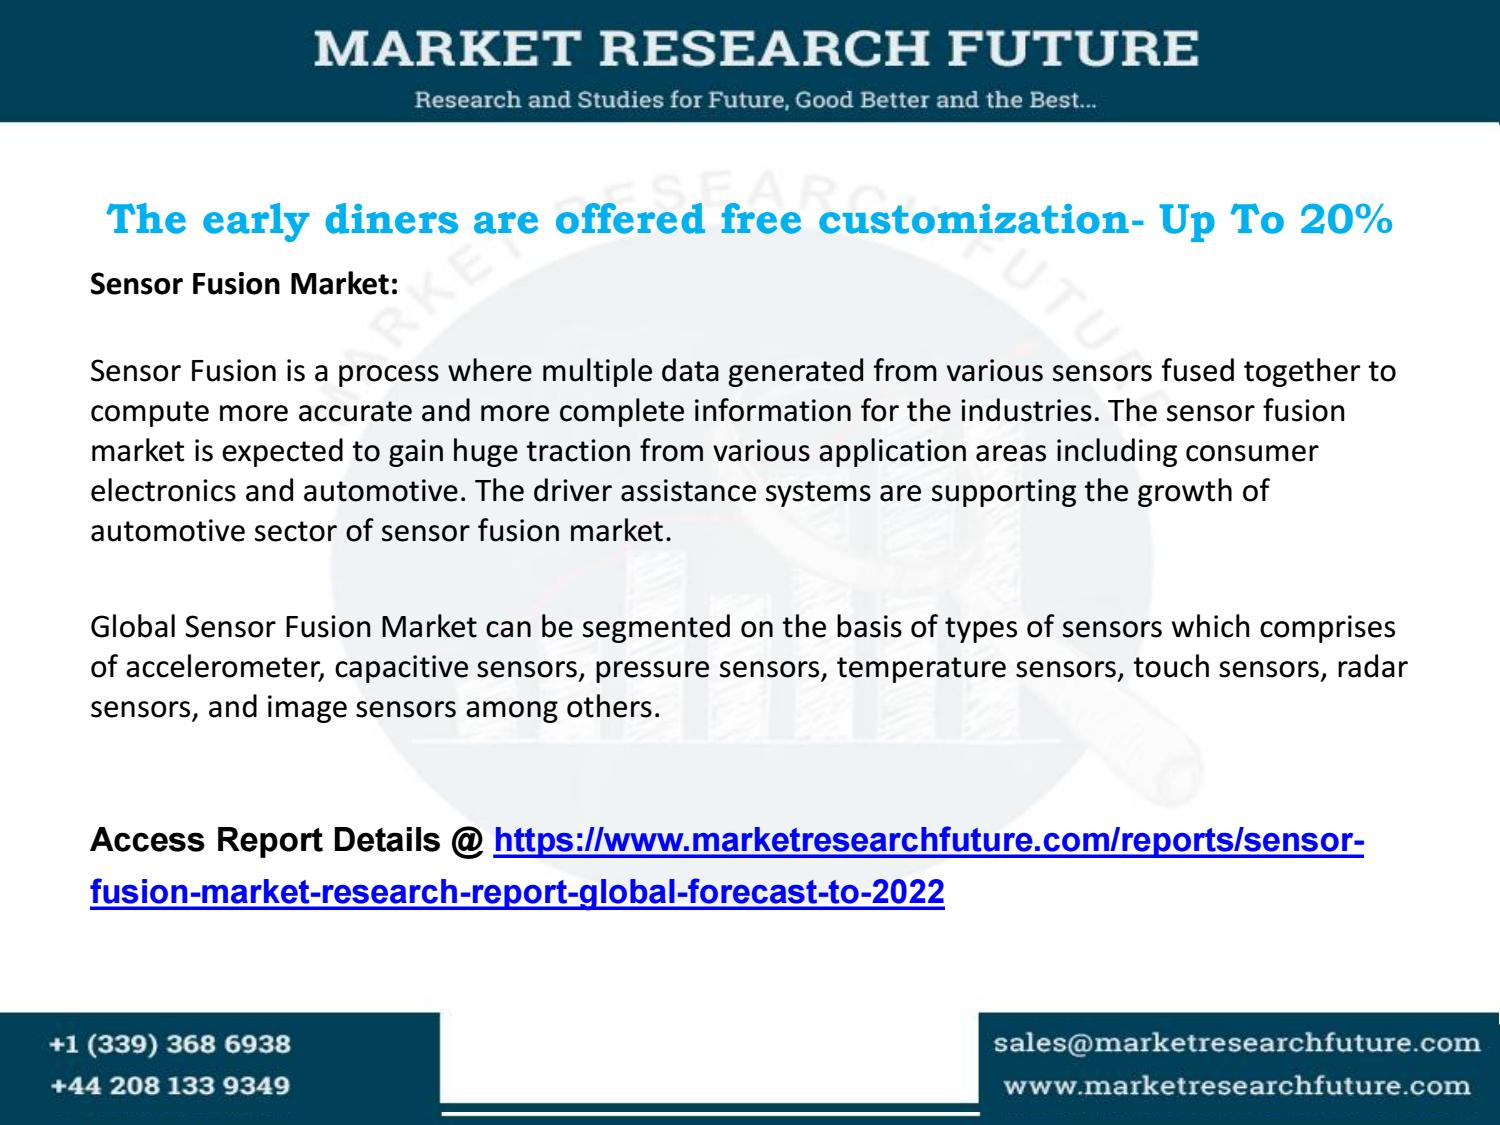 Sensor fusion market research report global forecast to 2022